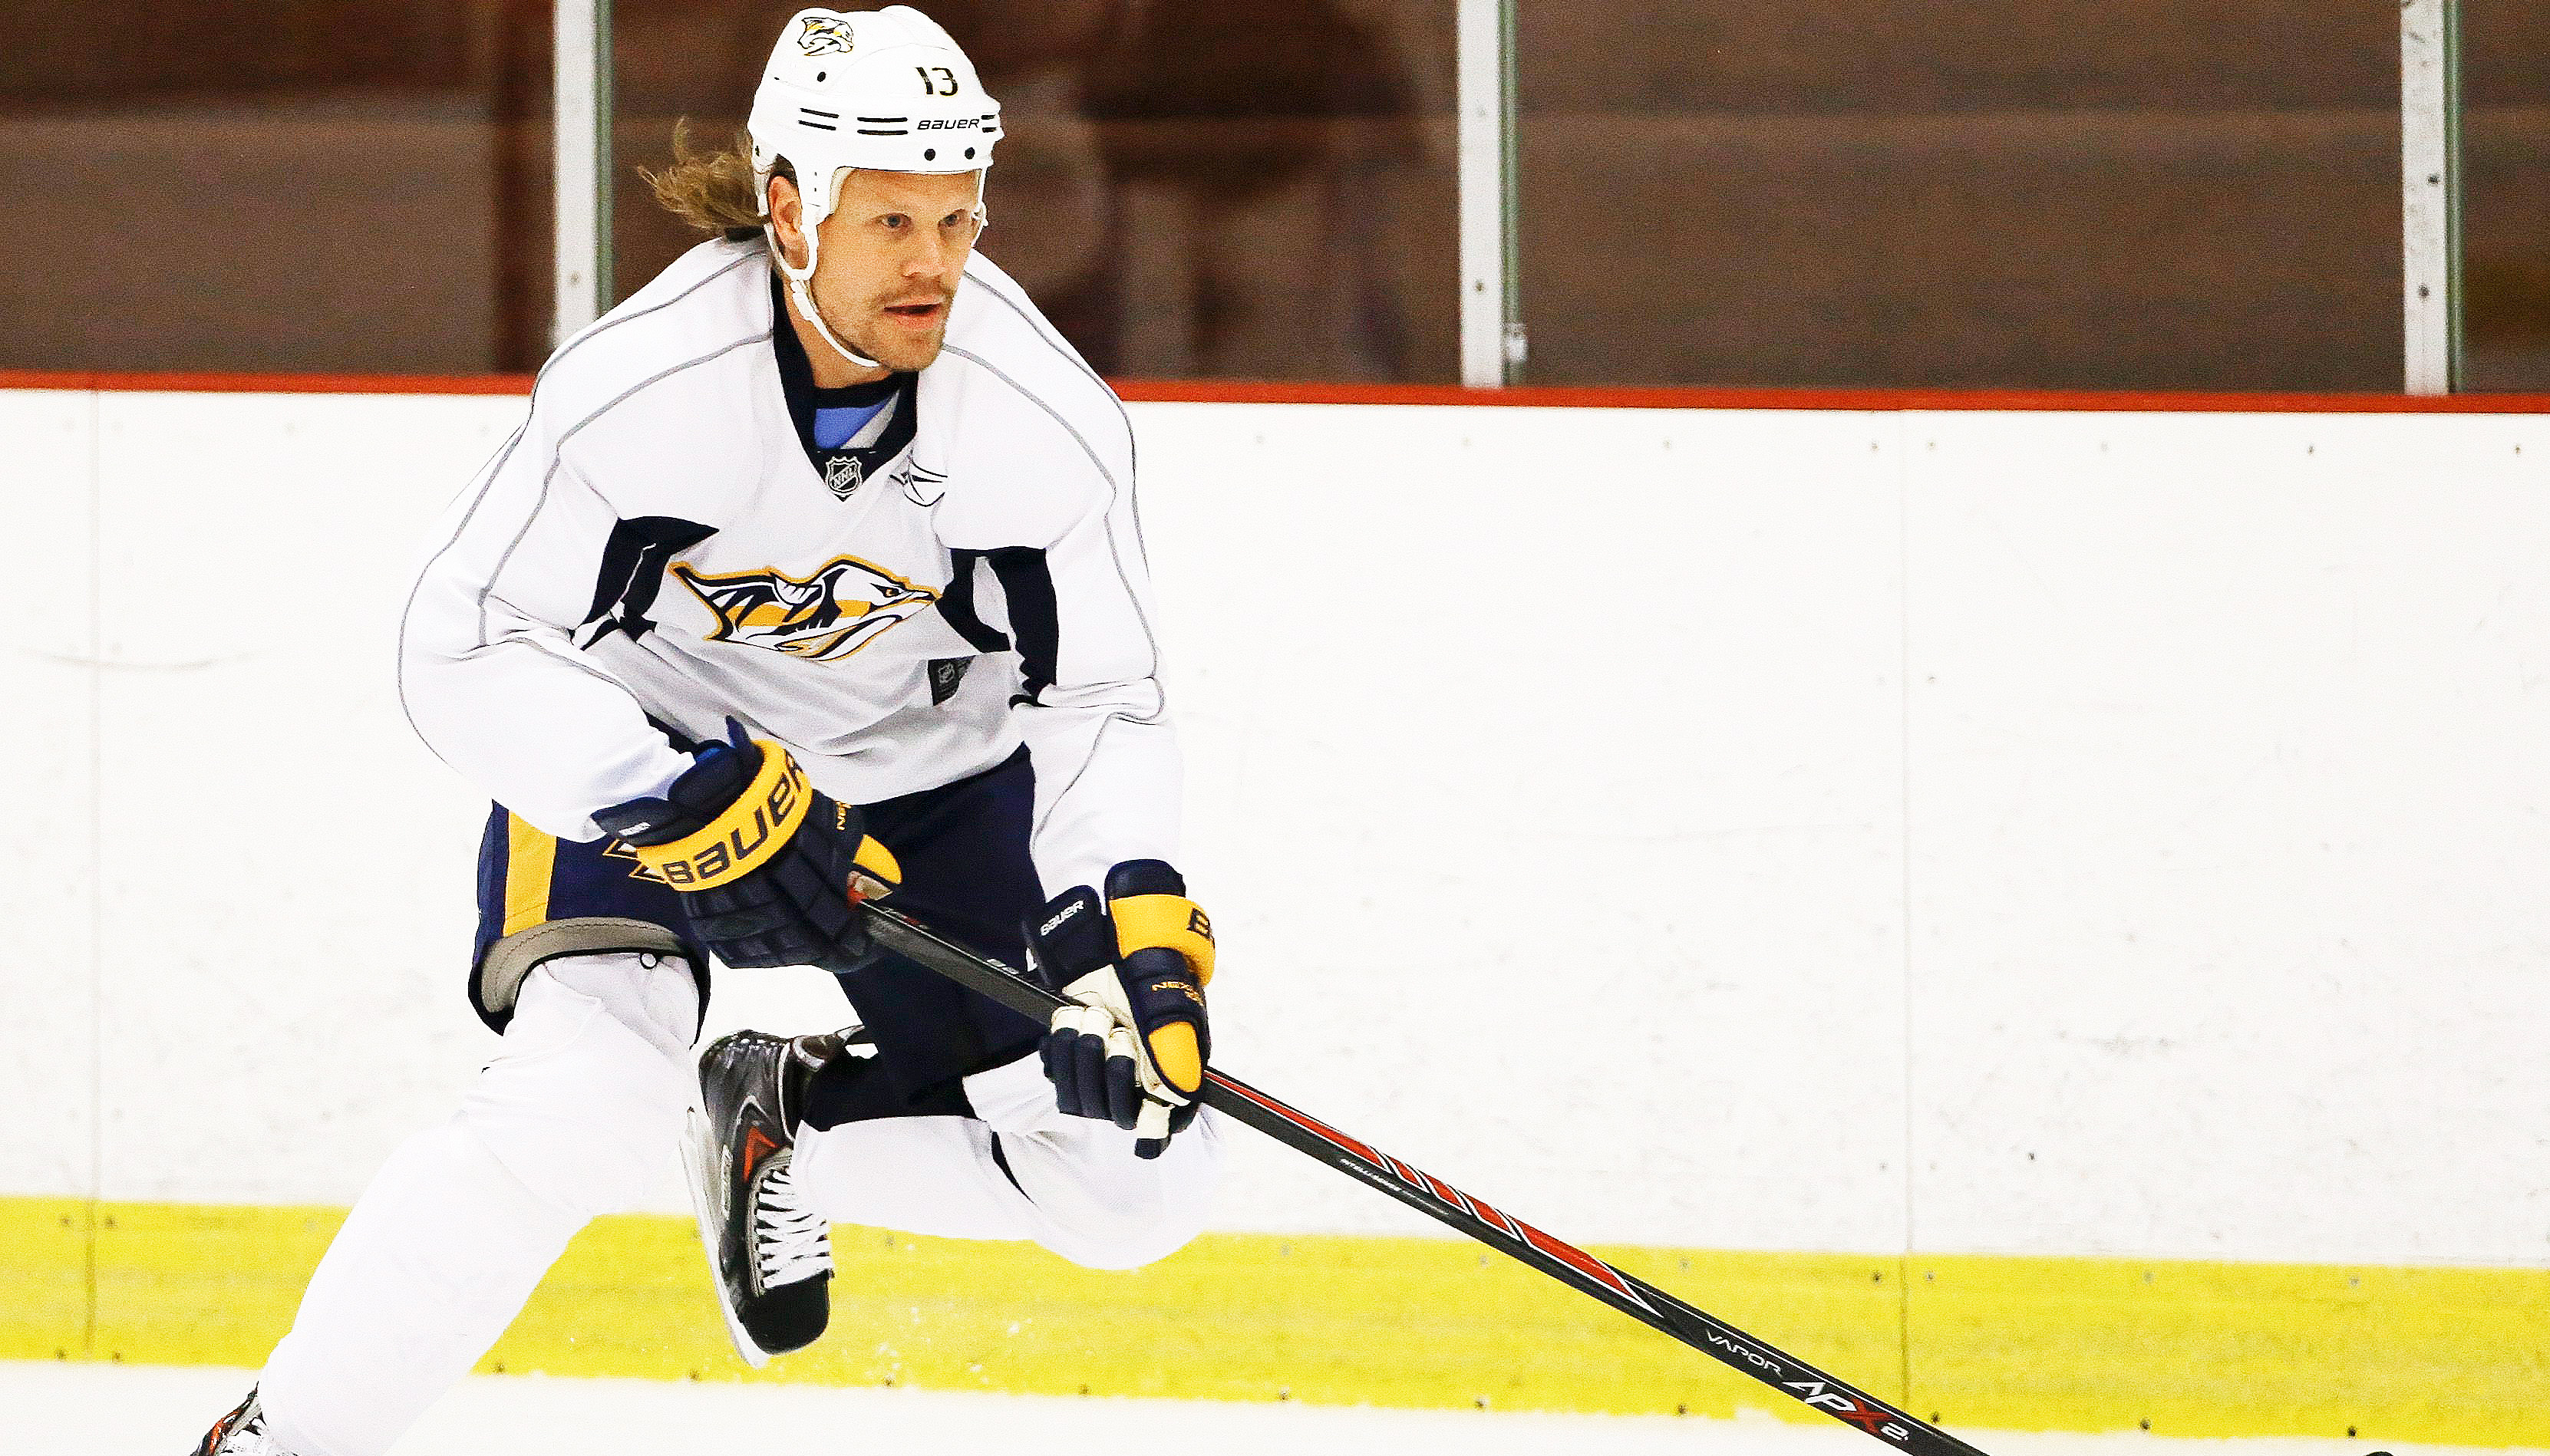 Why Maple Leafs' Jokinen cut 14 inches of hair - Sportsnet.ca